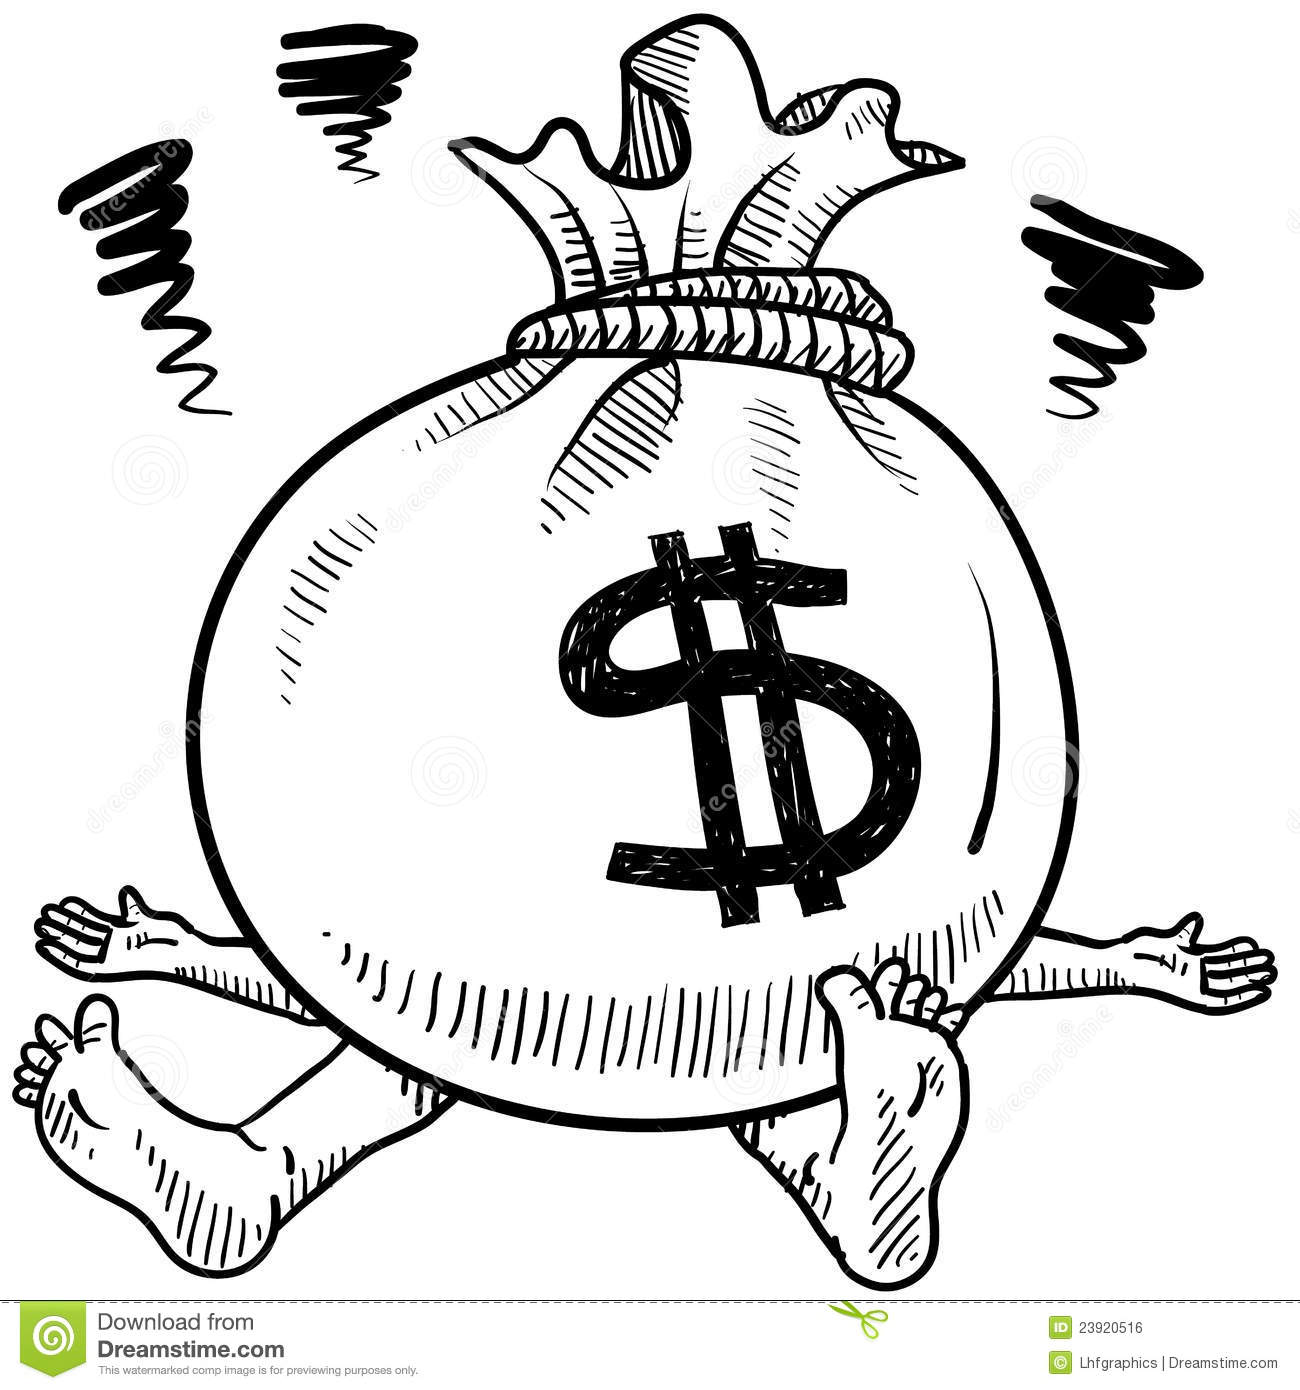 Royalty Free Stock Image Financial Problems Stress Vector Image23920516 on drawing money bag